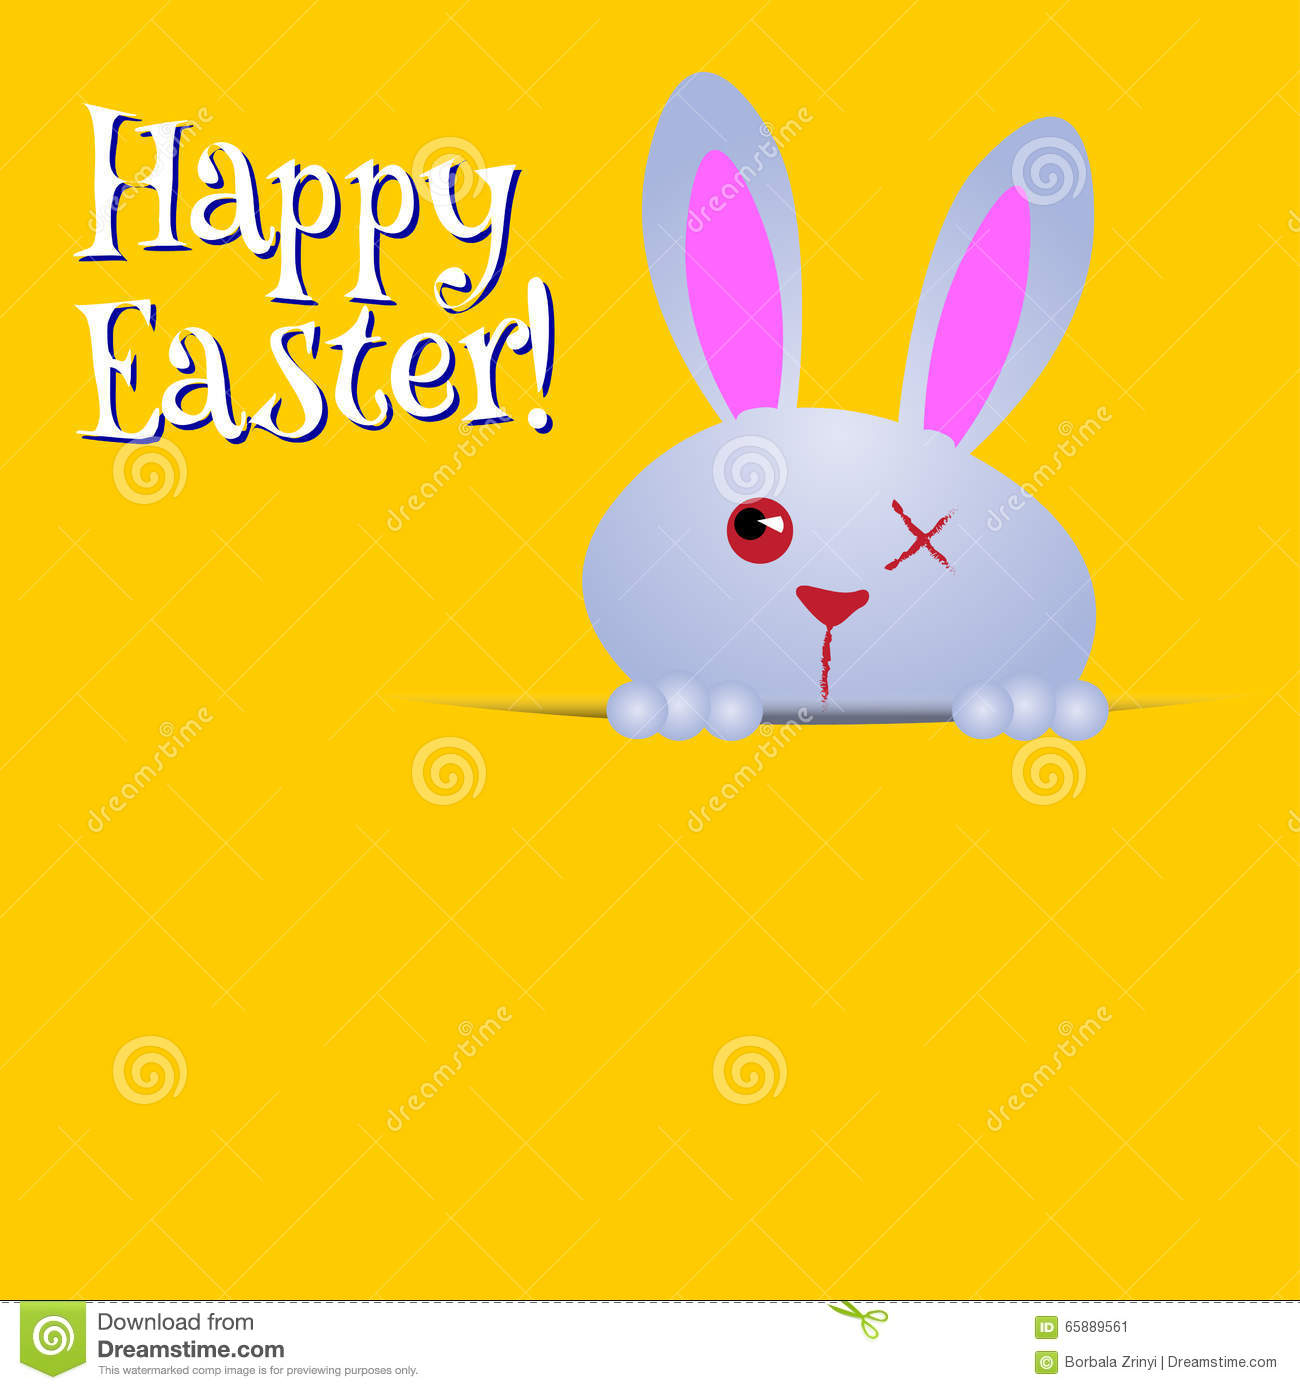 Happy easter greeting card funny bunny stock illustration happy easter greeting card funny bunny concept spring kristyandbryce Choice Image